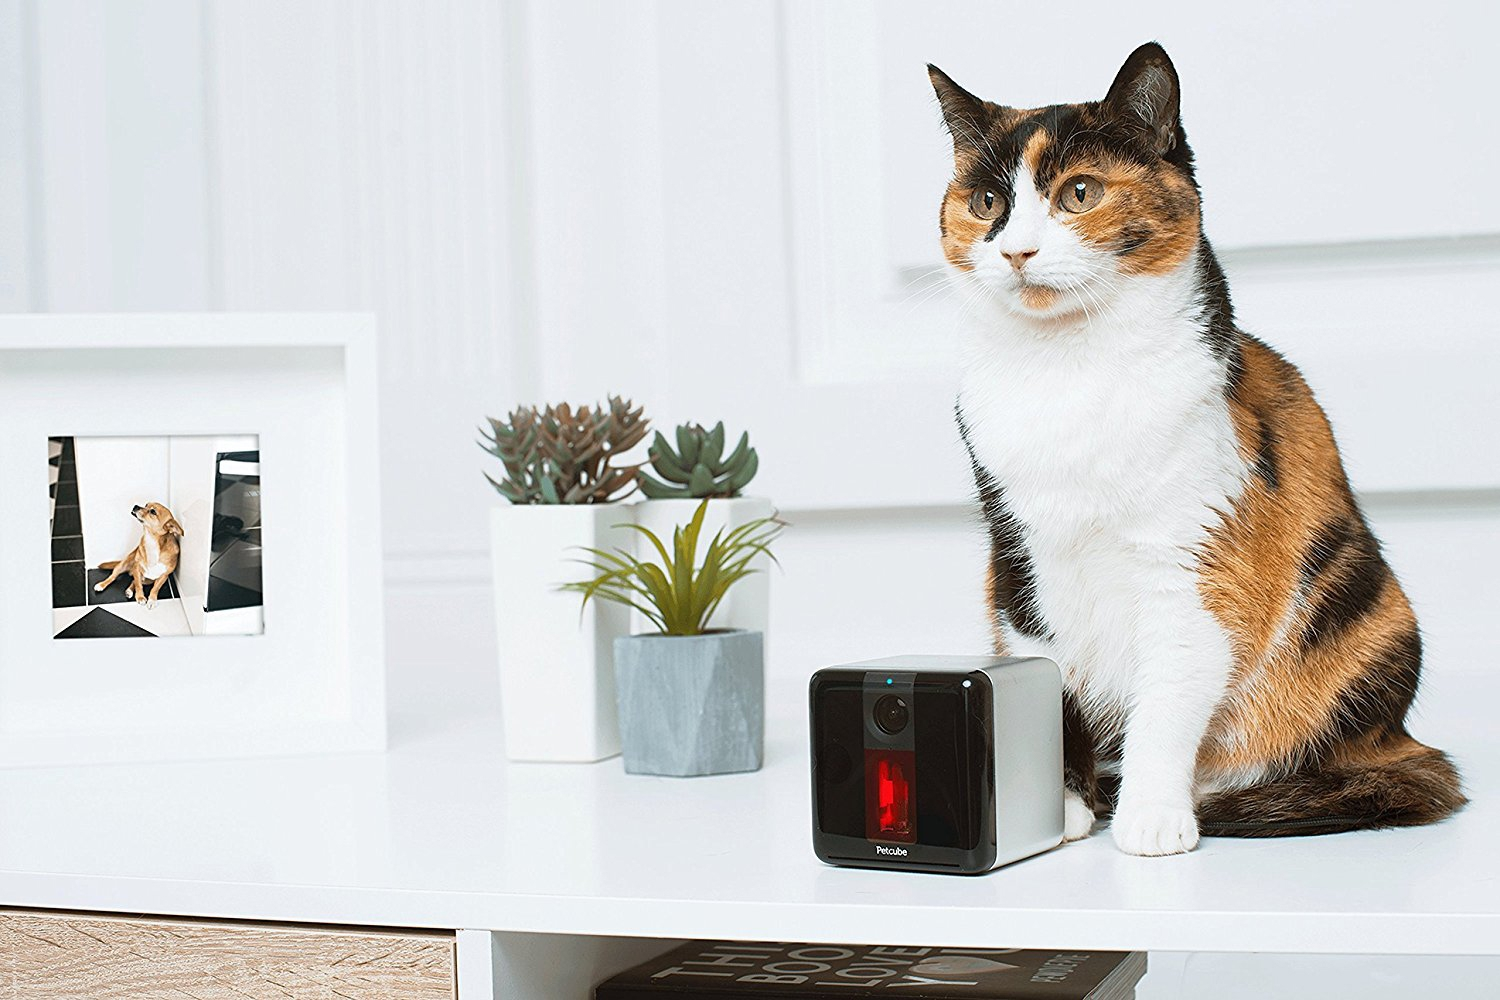 Petcube-Play-Interactive-Wi-Fi-Pet-Camera-in-home-demo-with-cat